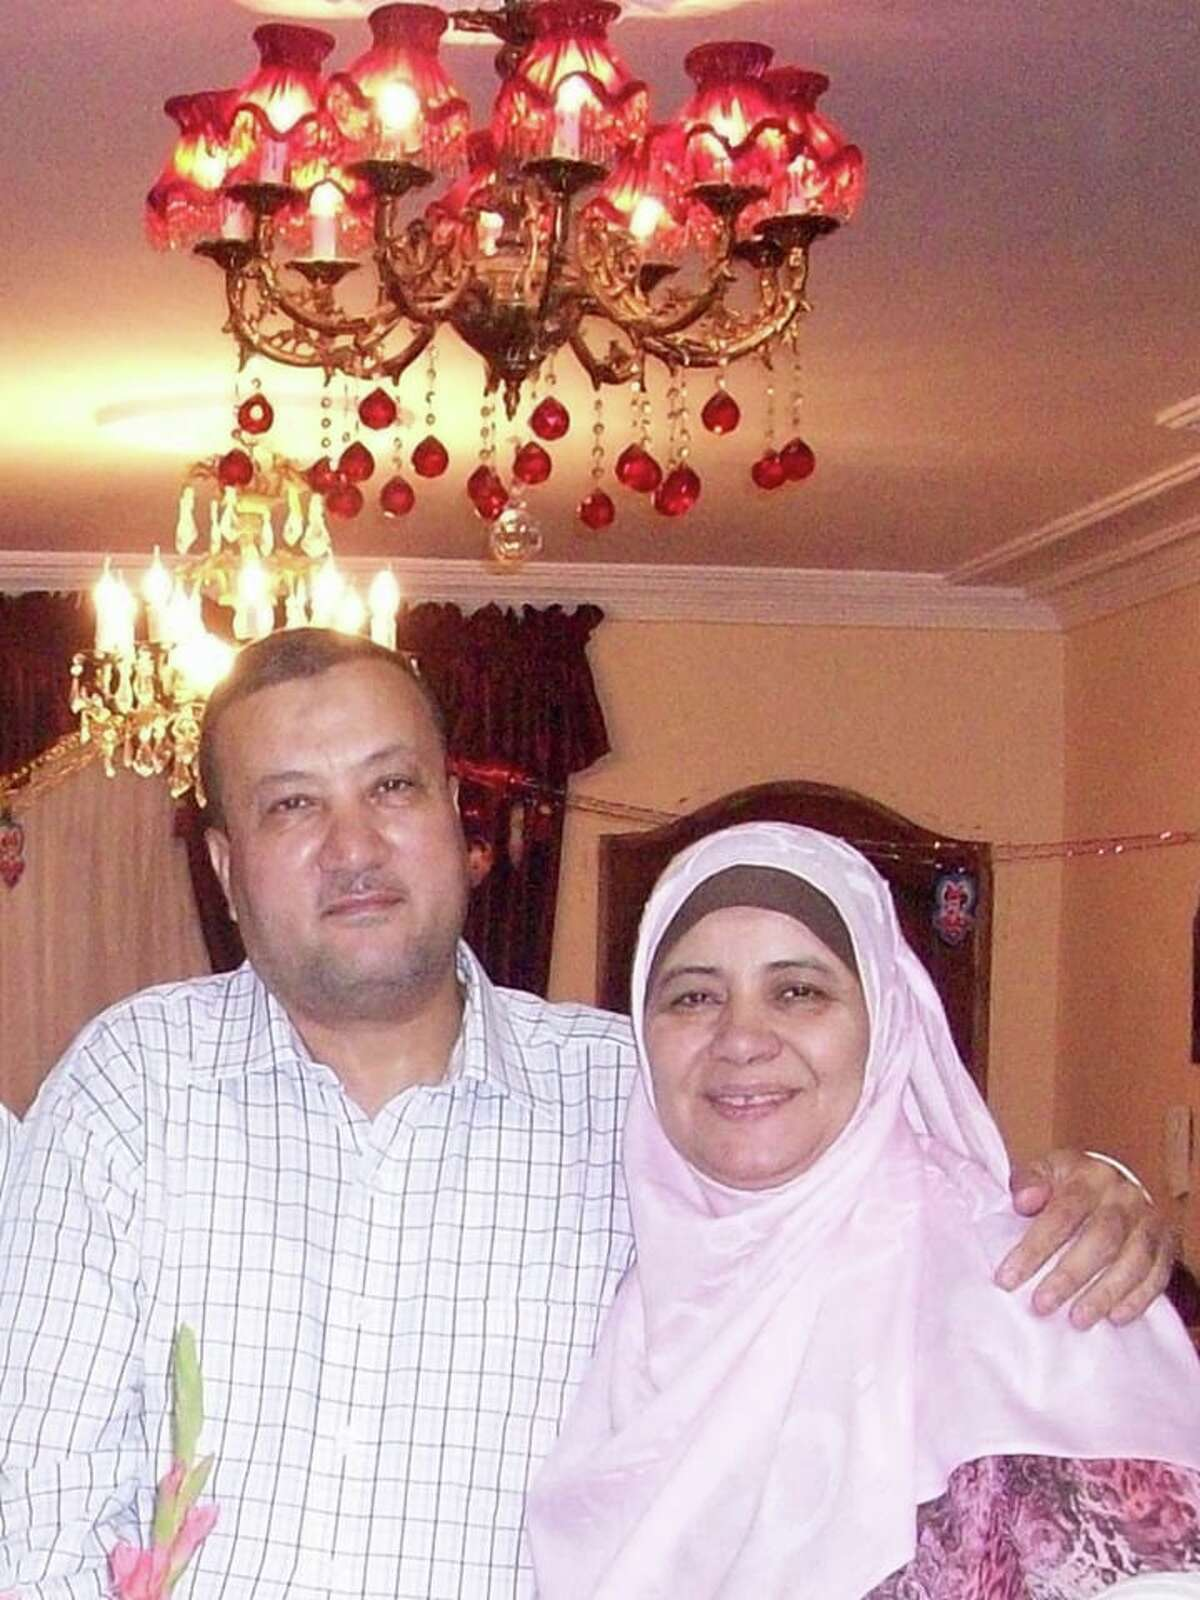 Ahmed Abdelnaby Mahmoud and Raia Abdallah Hassan, whose U.S. citizen daughter lives in Glenmont, have been detained, awaiting trial and without charges, in Egypt since December 2018.